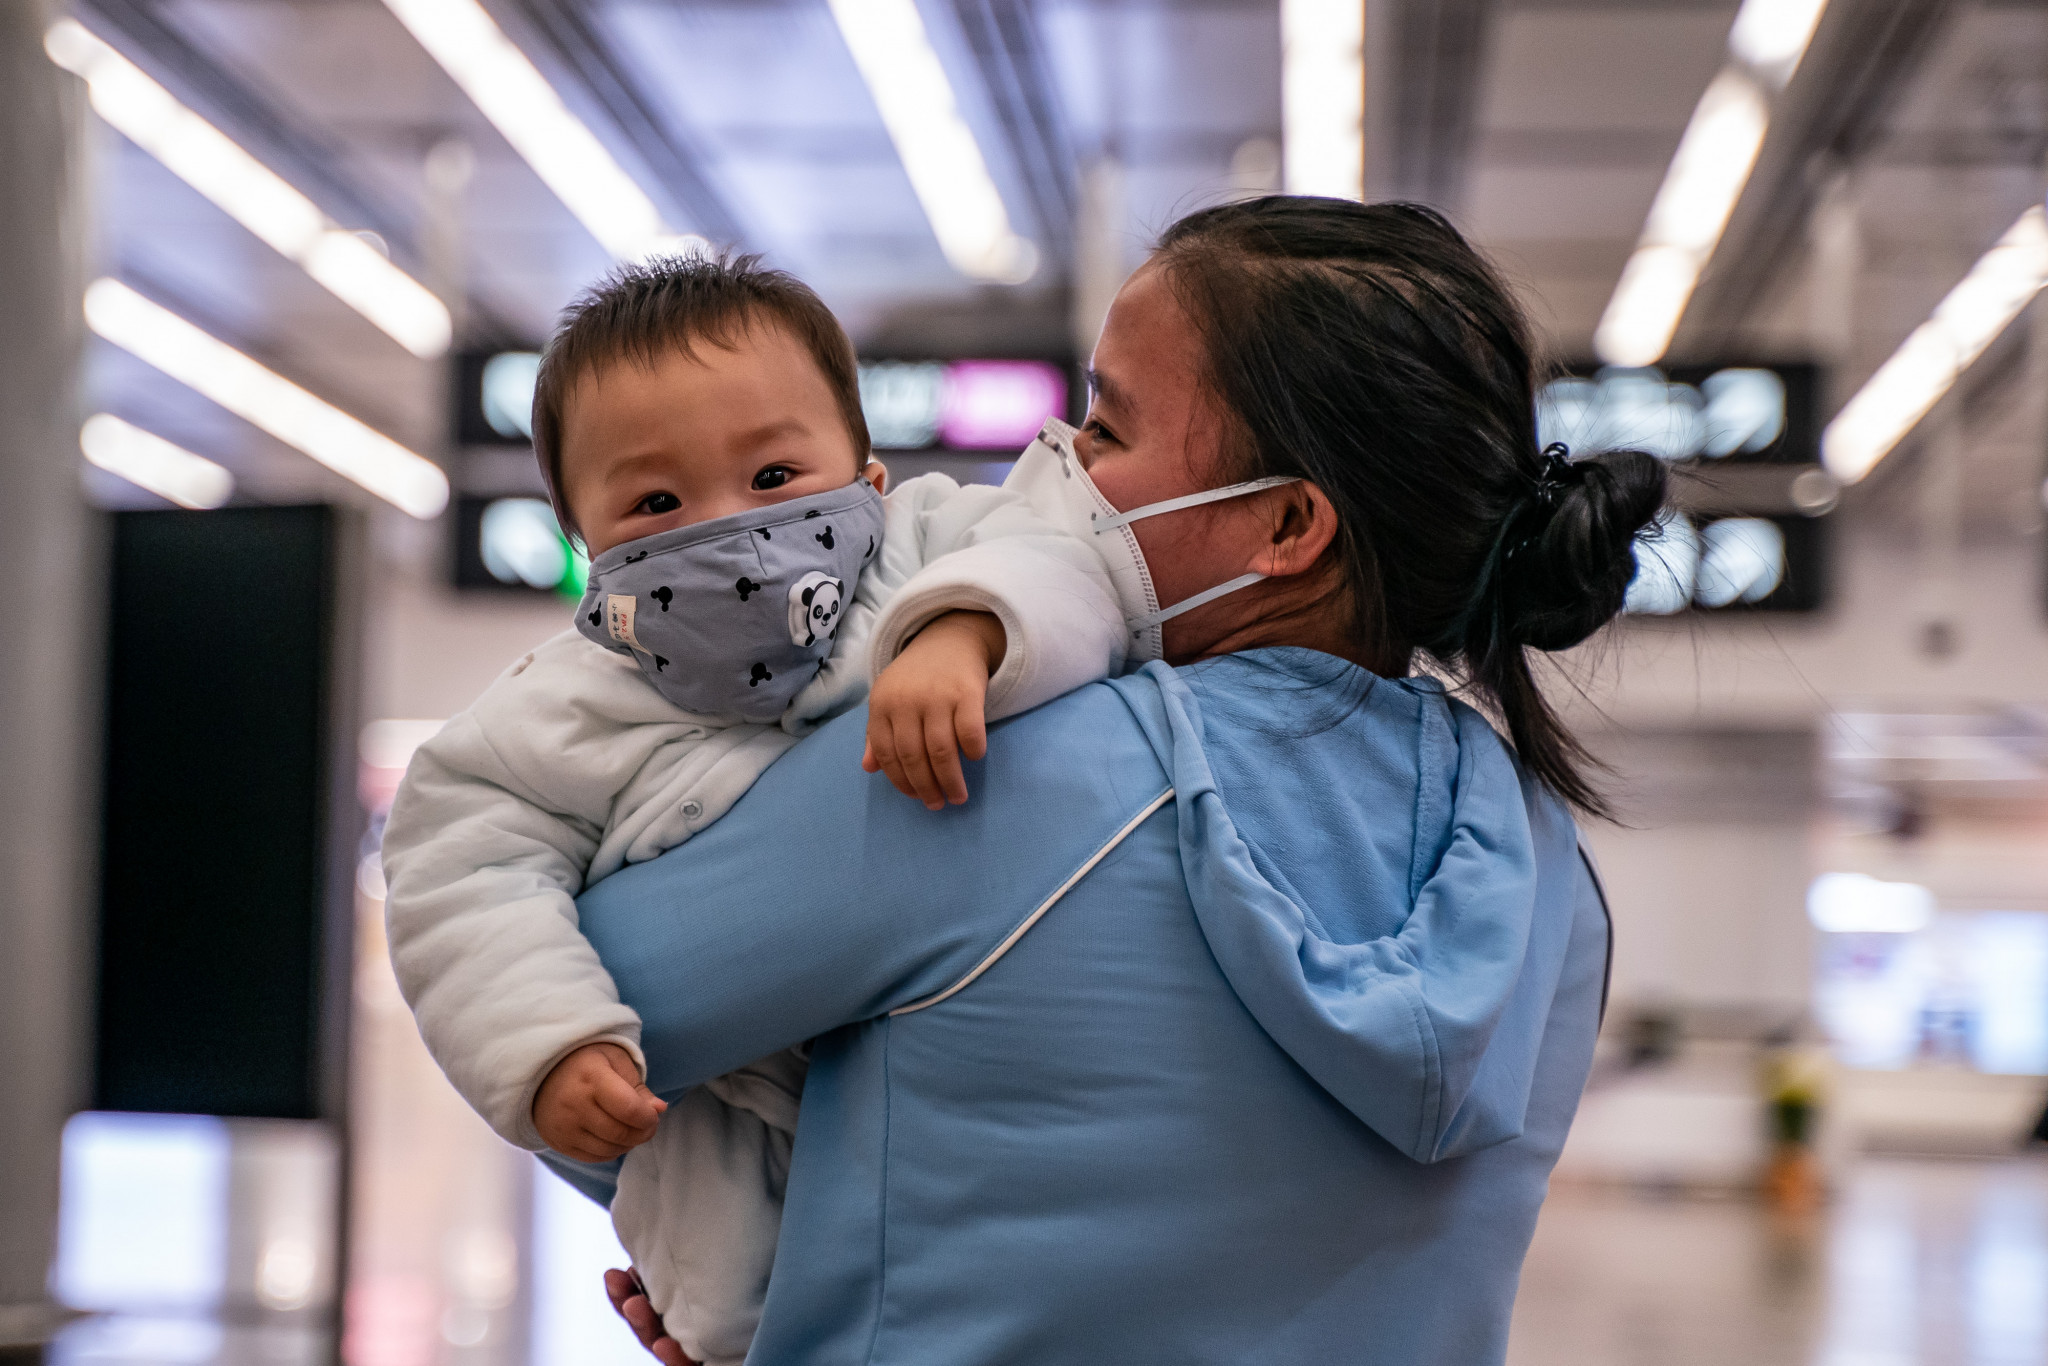 So far, 131 people have died from coronavirus in China and more than 5,000 people infected ©Getty Images